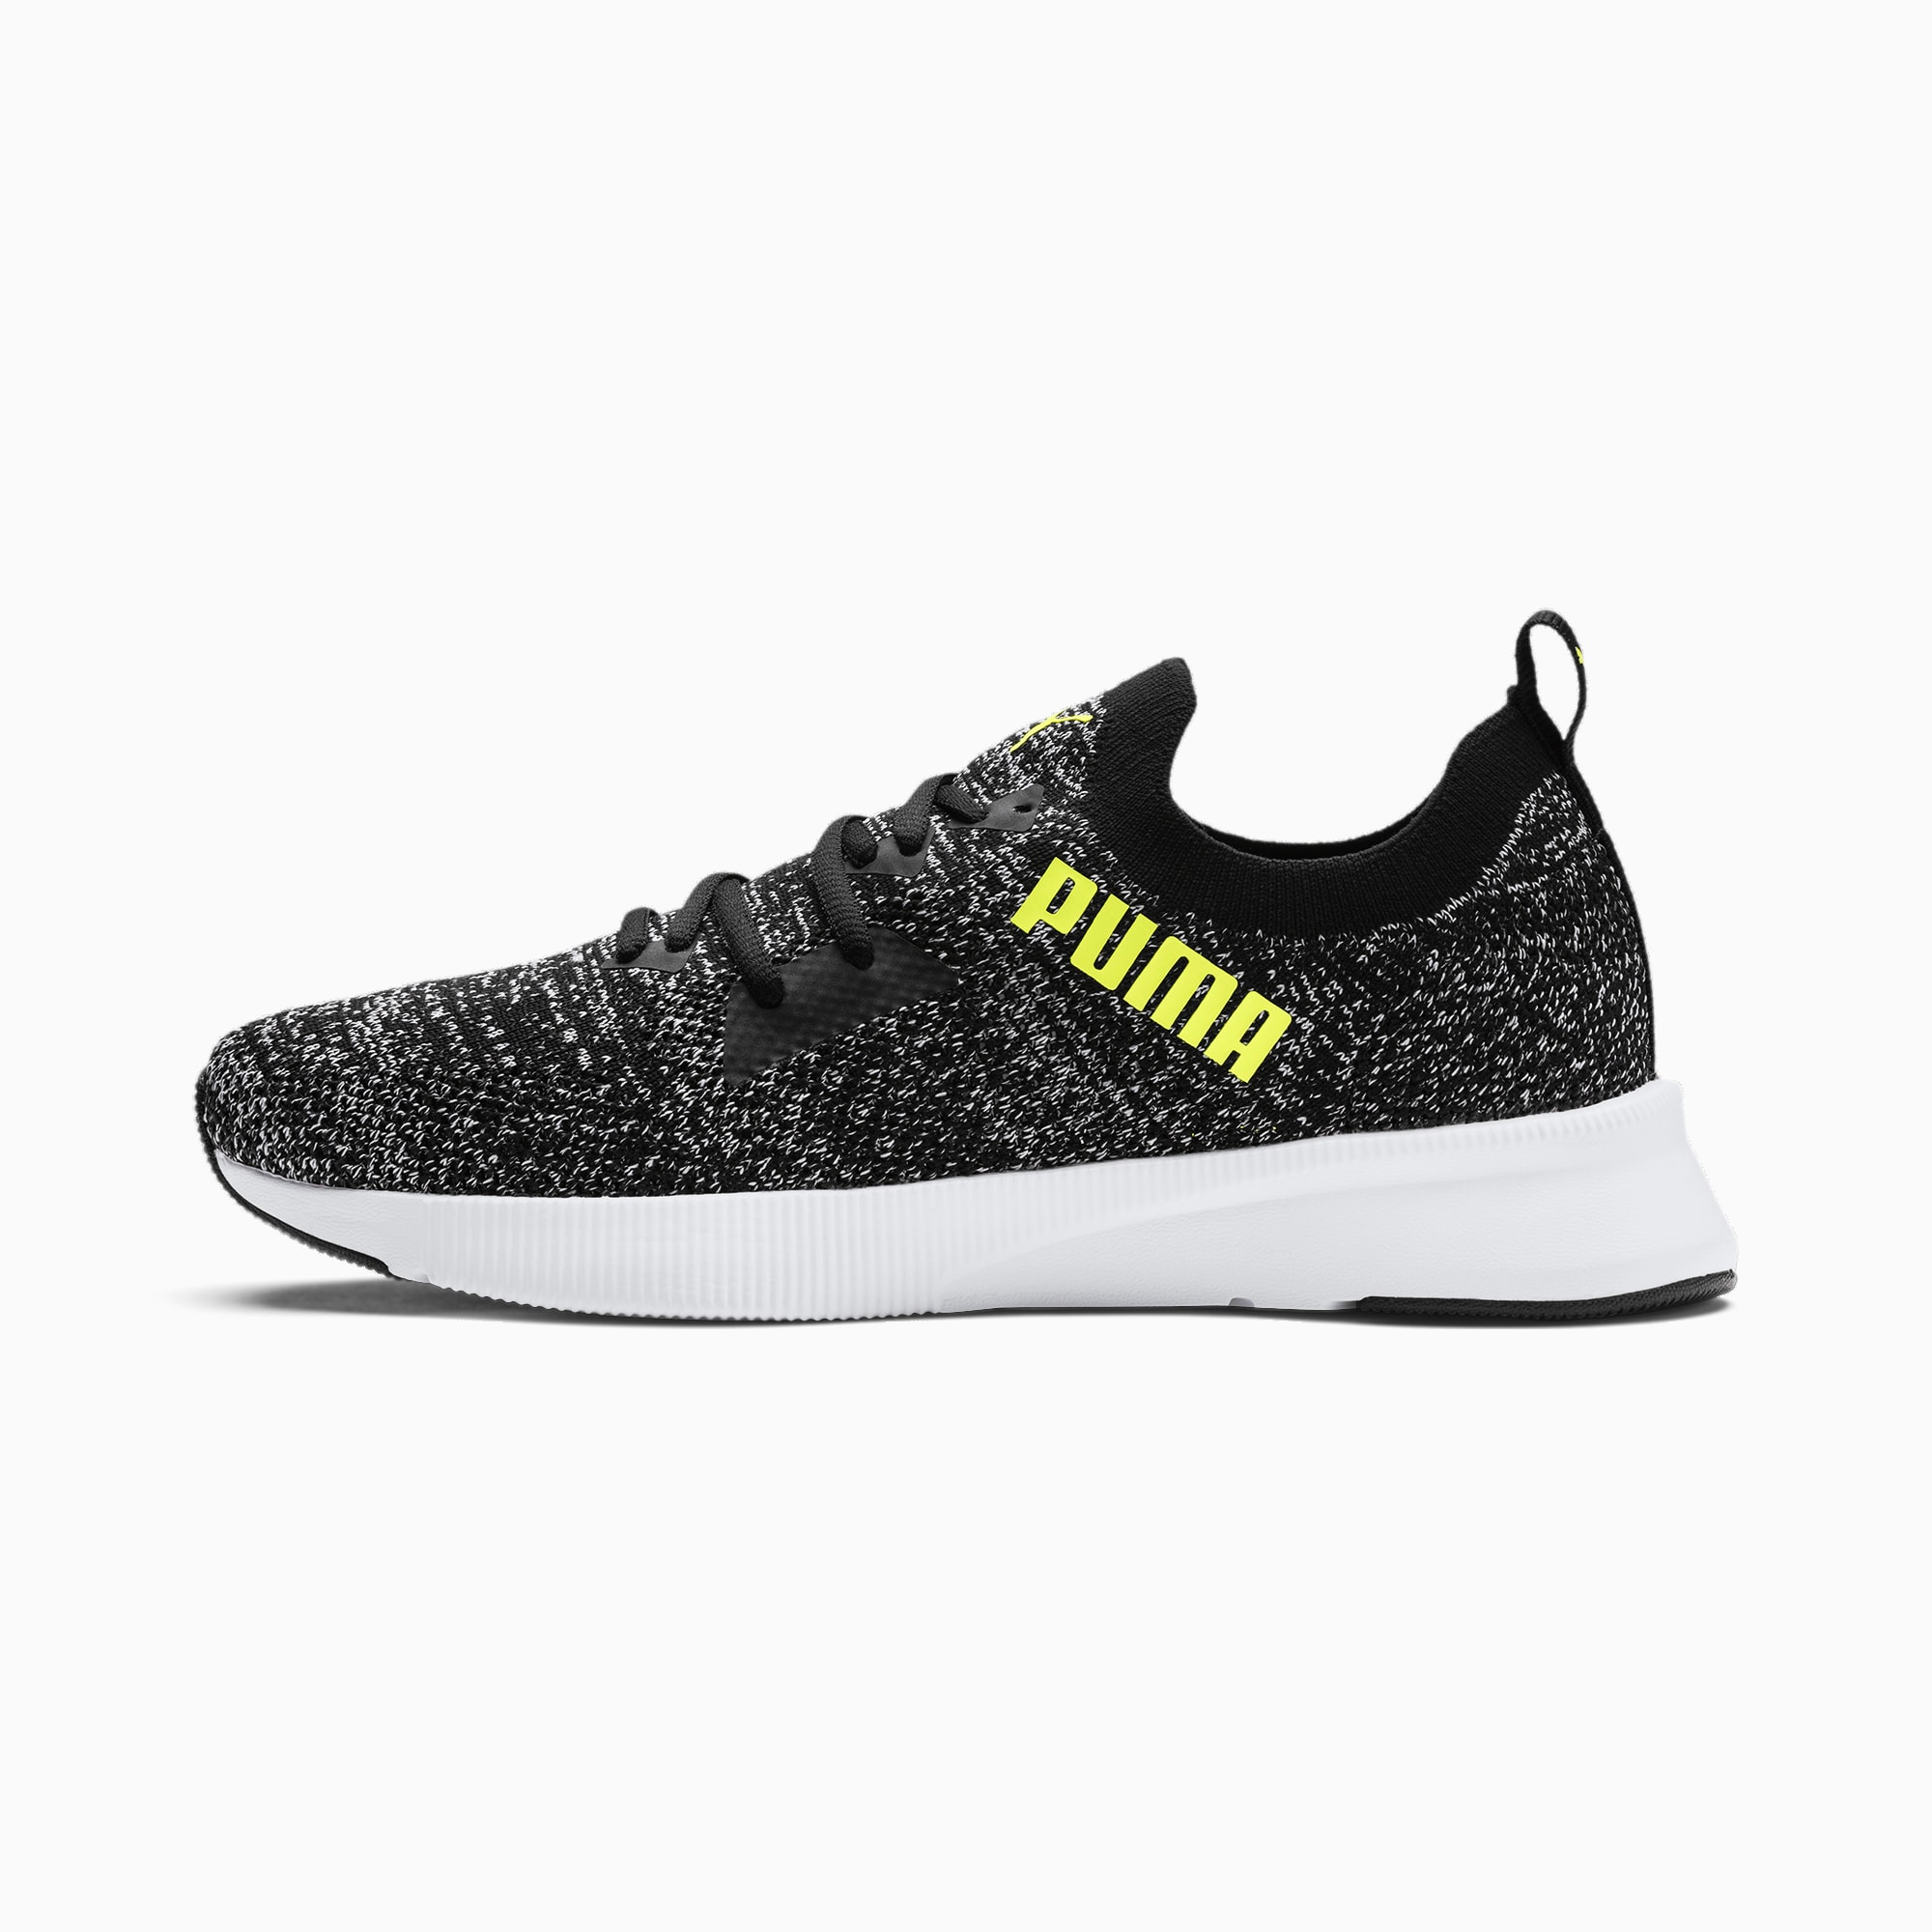 Chaussure de course Flyer Runner Engineered Knit pour homme